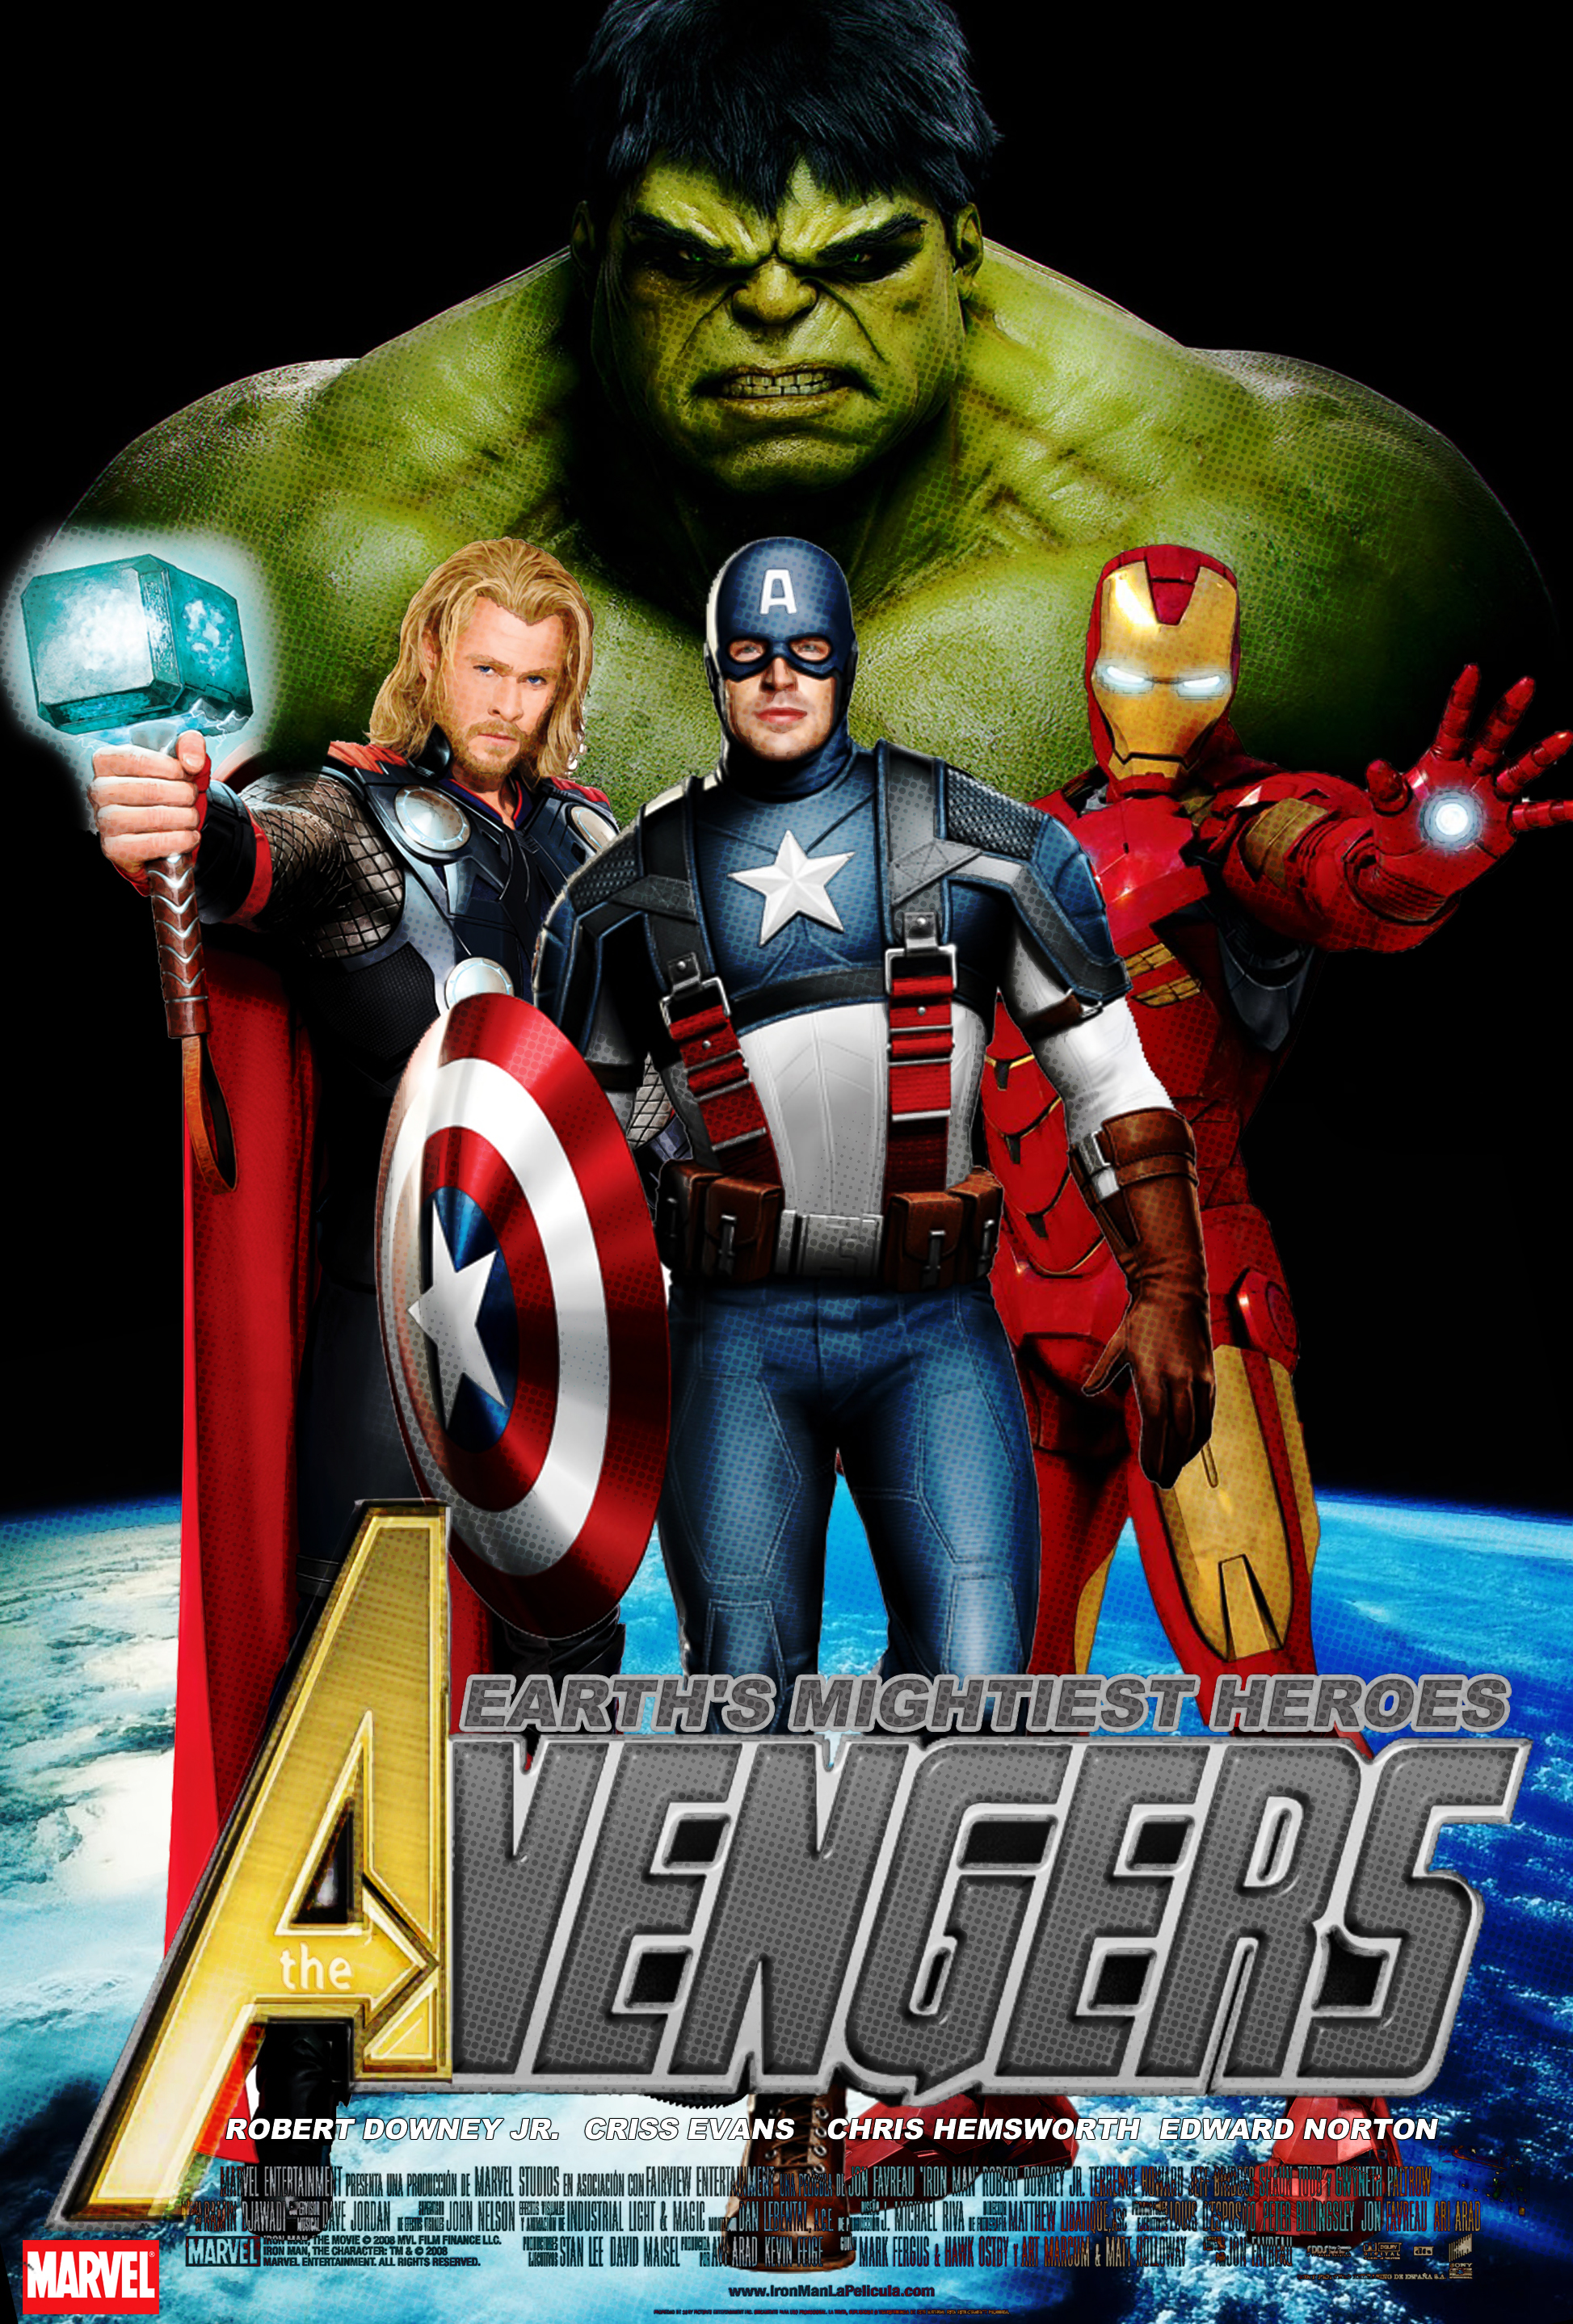 The Avengers Movie Poster by Alex4everdn on DeviantArt